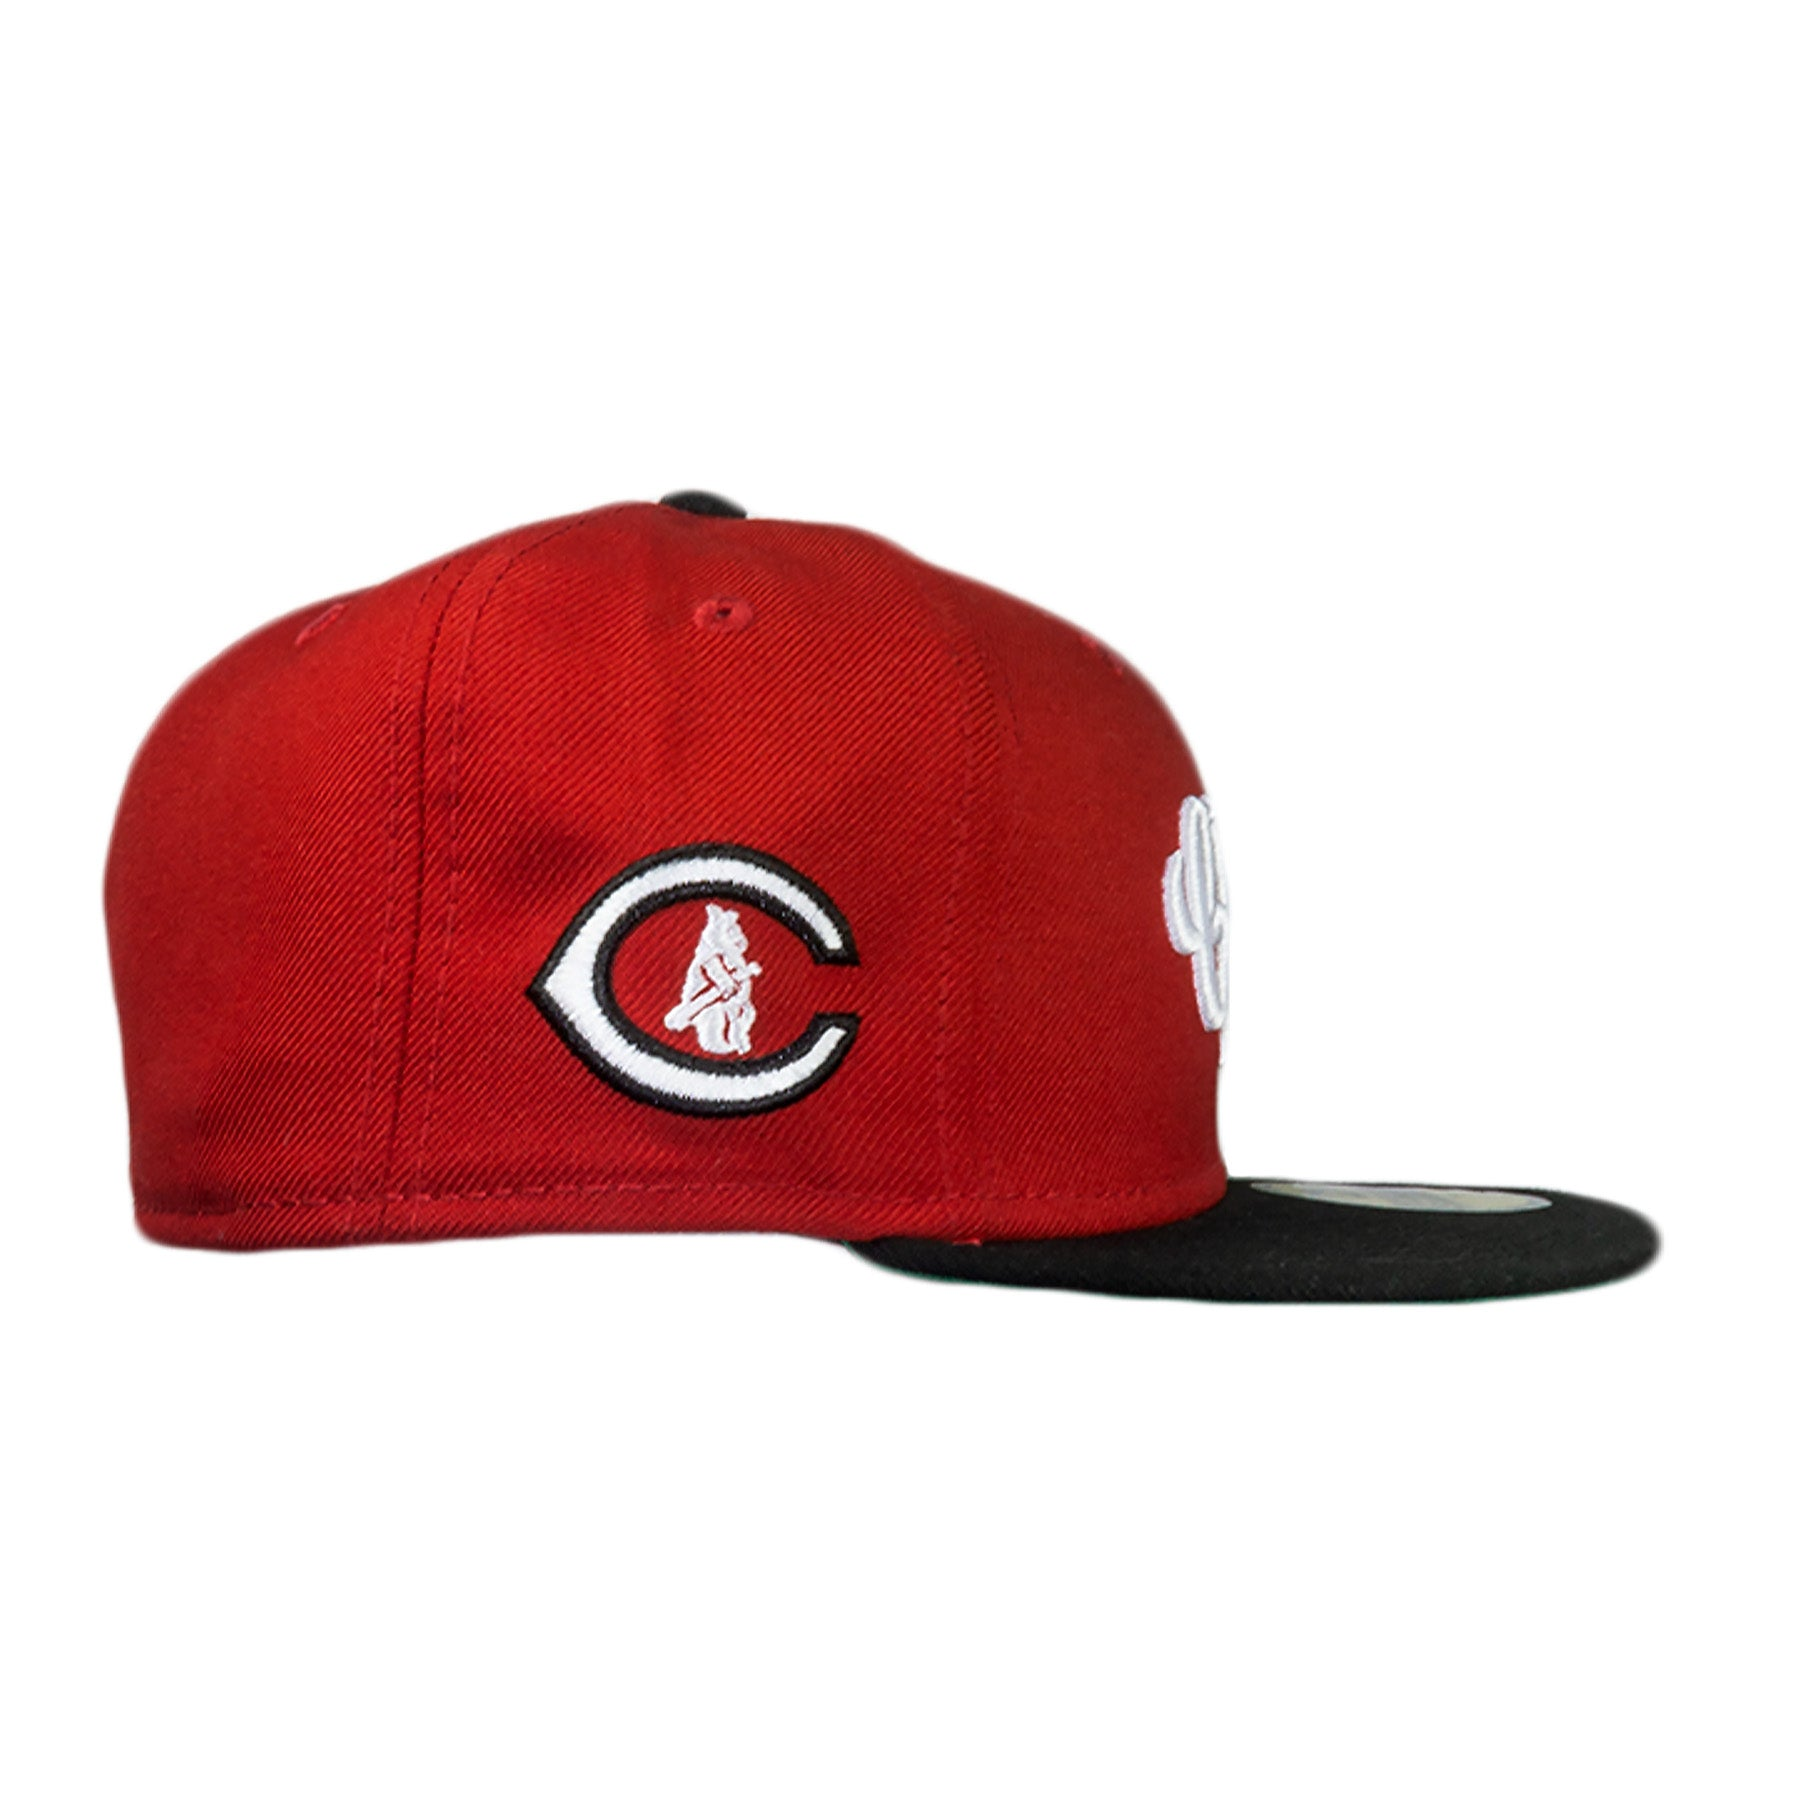 Chicago Cubs 1927 Side Patch Fitted Hat